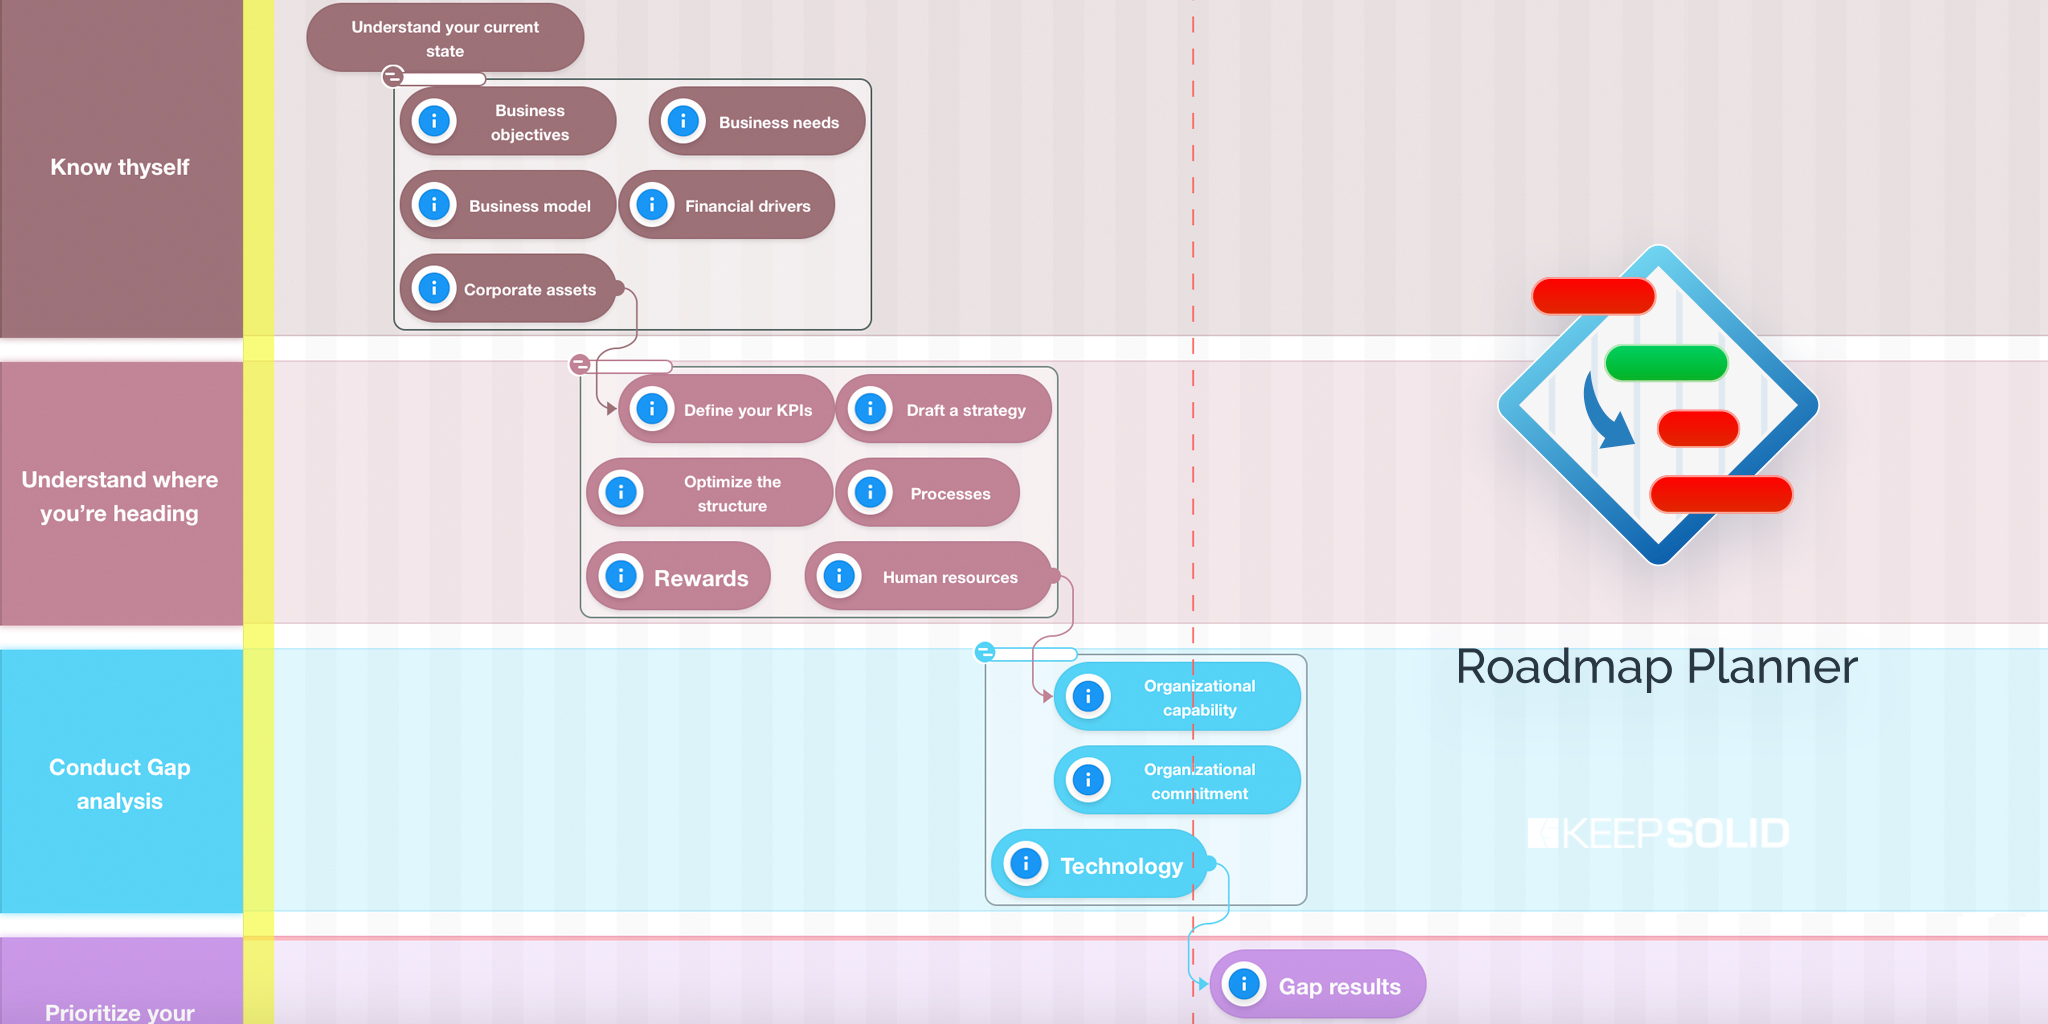 How to build a roadmap for business template in Roadmap Planner